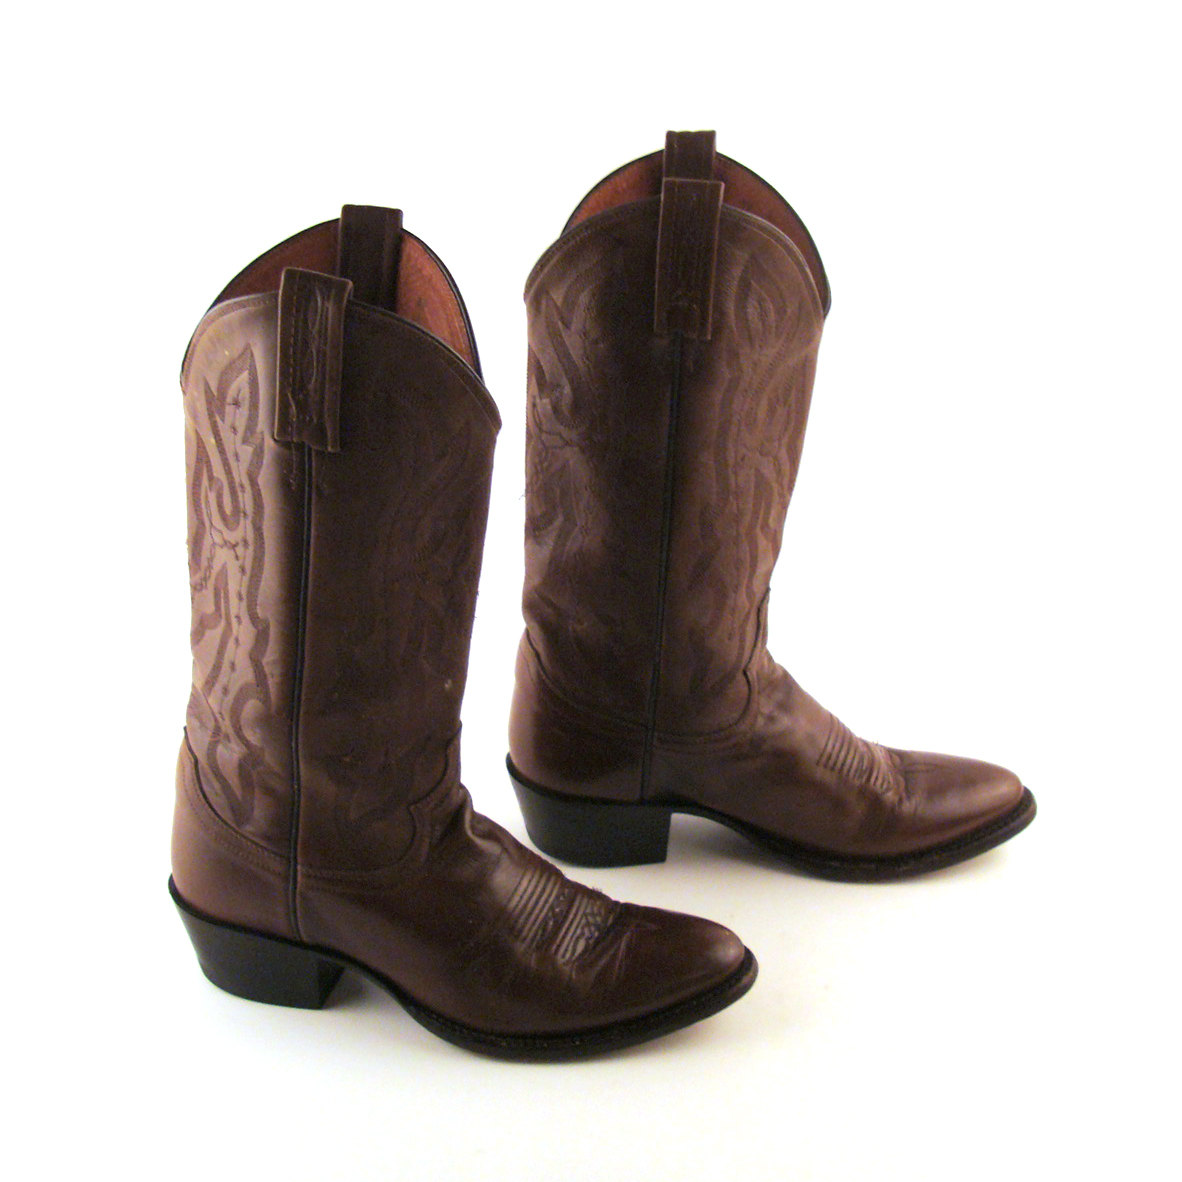 Womens Wide Cowboy Boots - Cr Boot